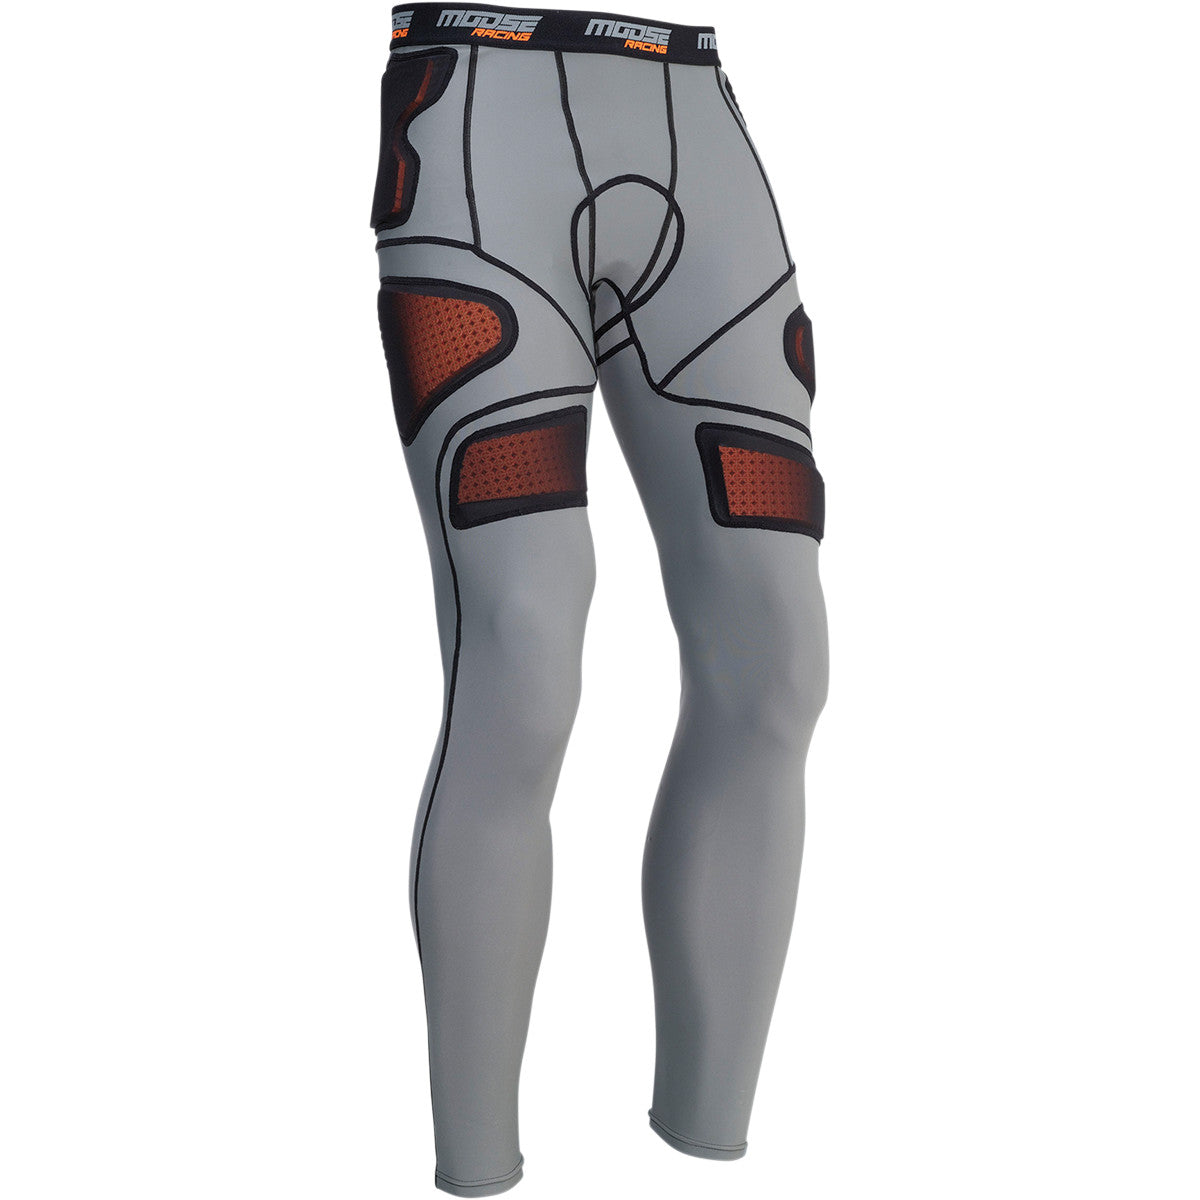 MOOSE XC1 Base Armor Pants